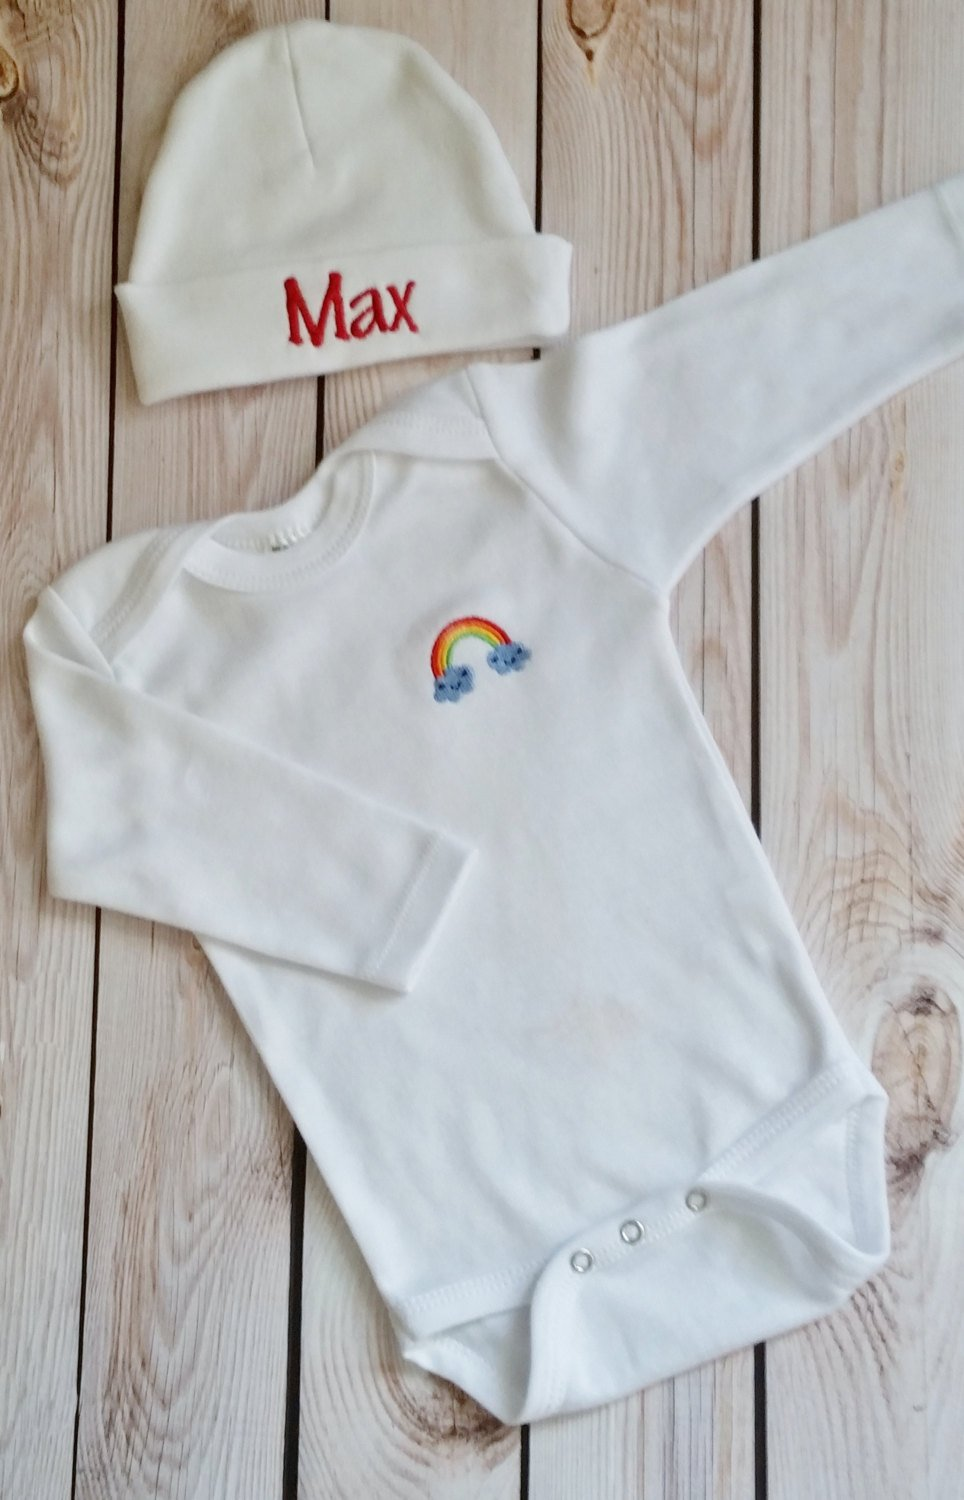 Newborn Coming Home Outfit 0-3 Month Baby Gown Rainbow Baby Rainbow Baby Clothing